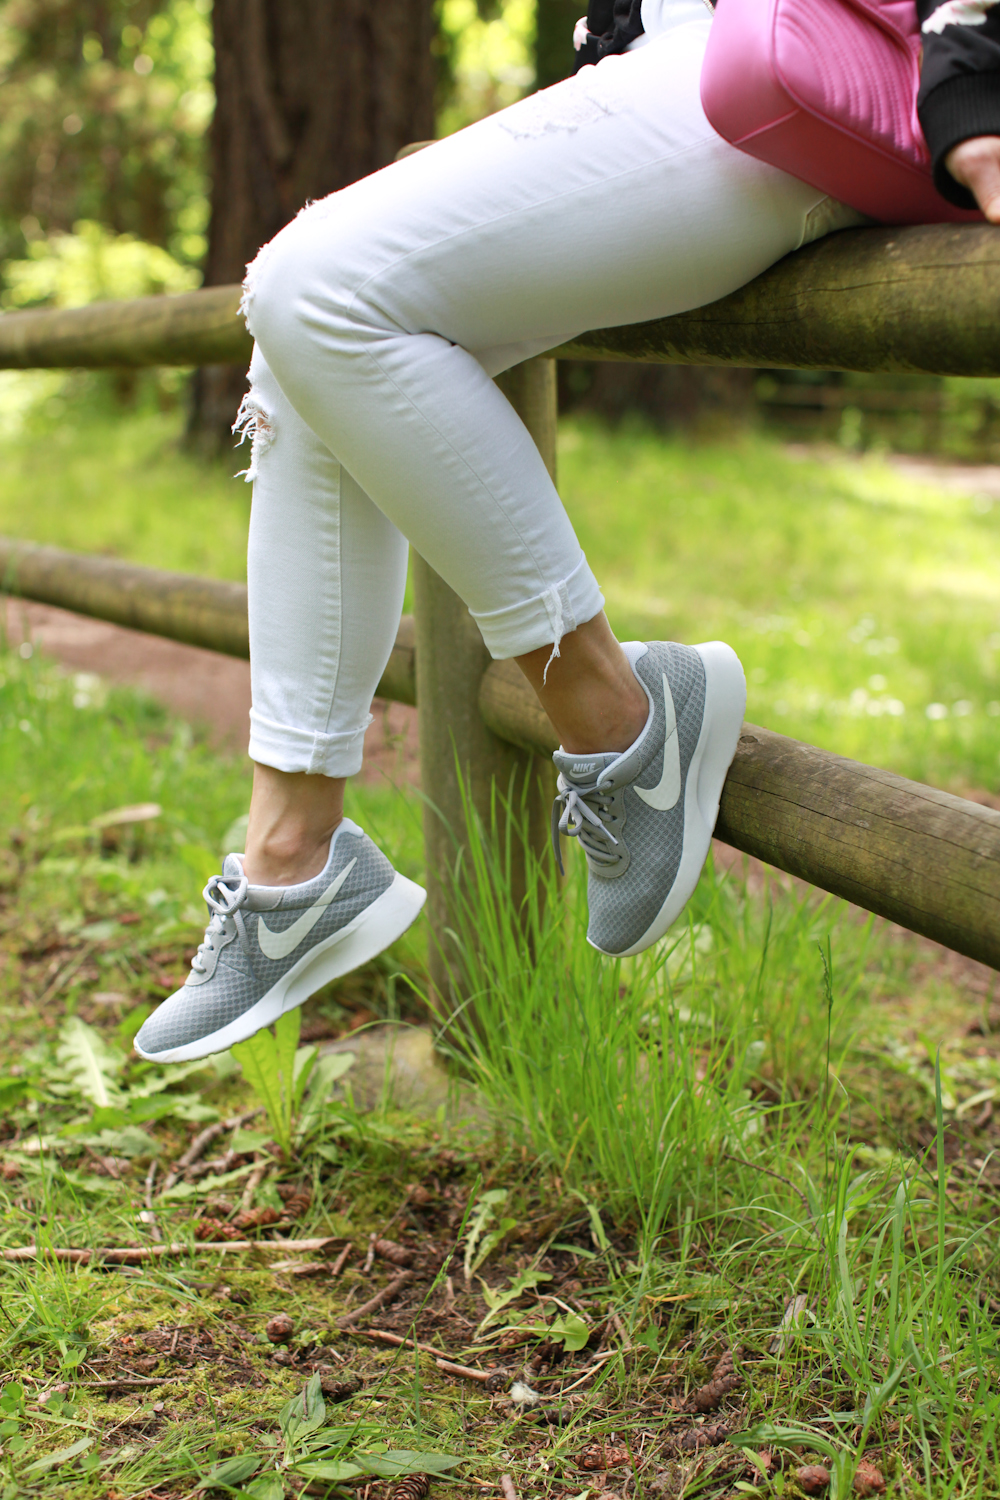 Sneaker Style: Gym to Every Day Casual